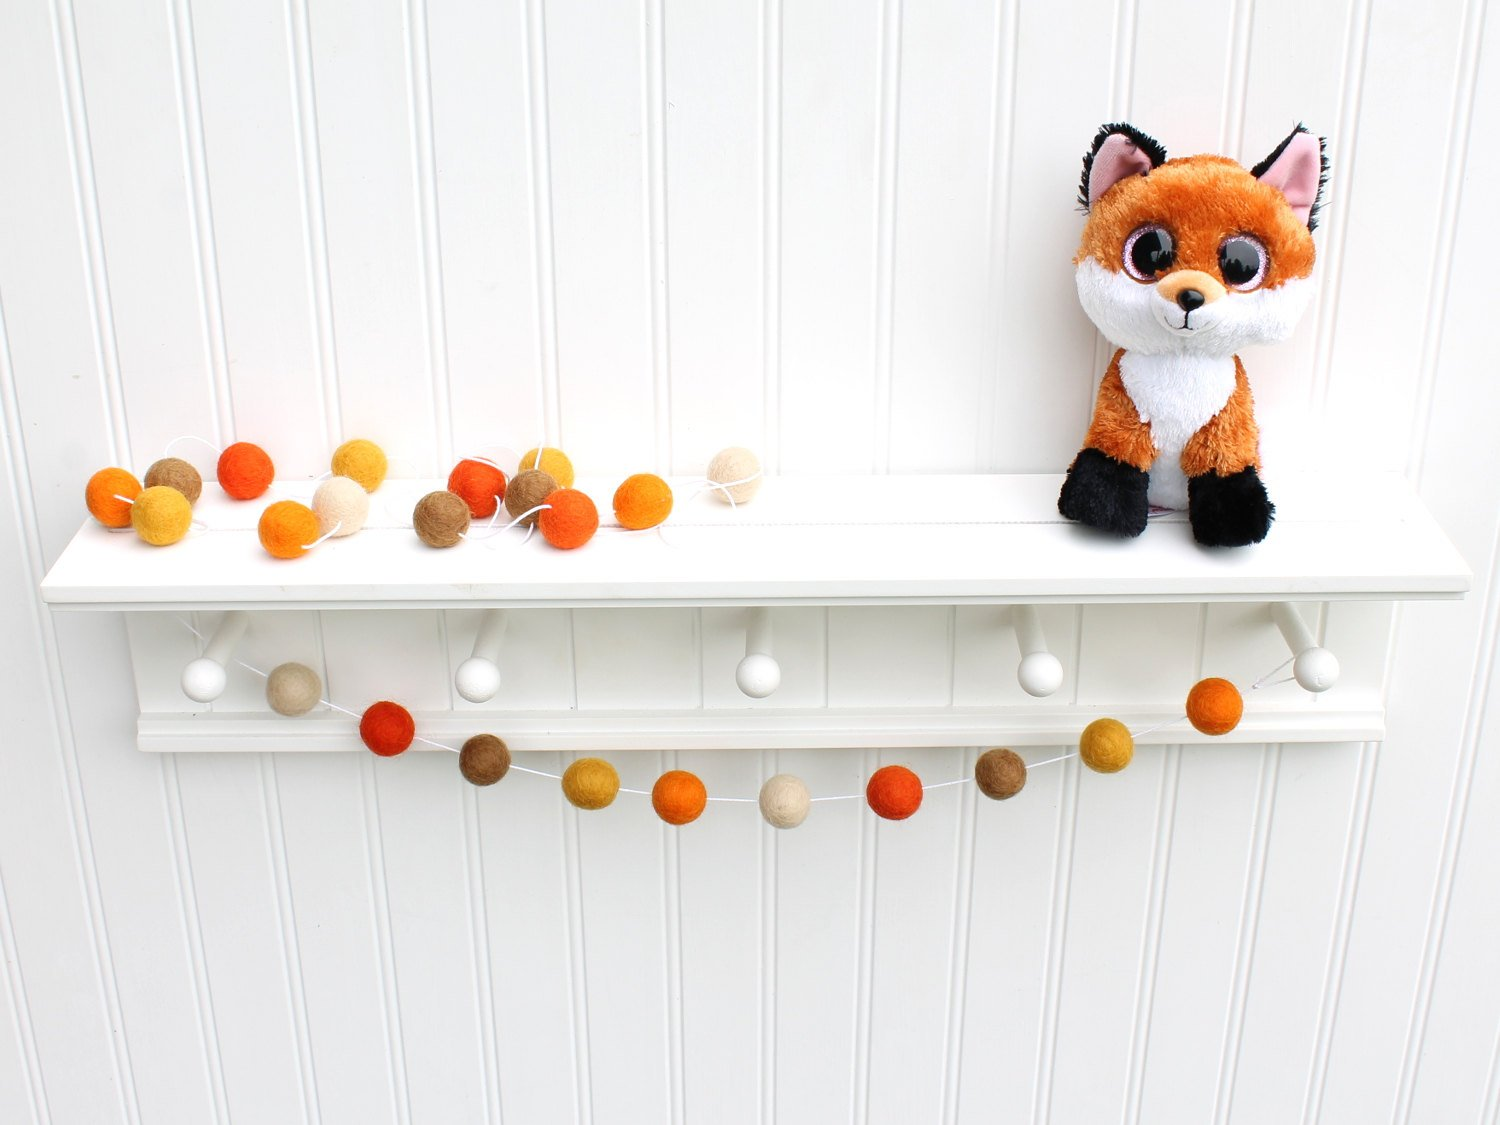 Felt Ball Garland Fall Pom Pom Garland Halloween Party Decor Therainbowbarn